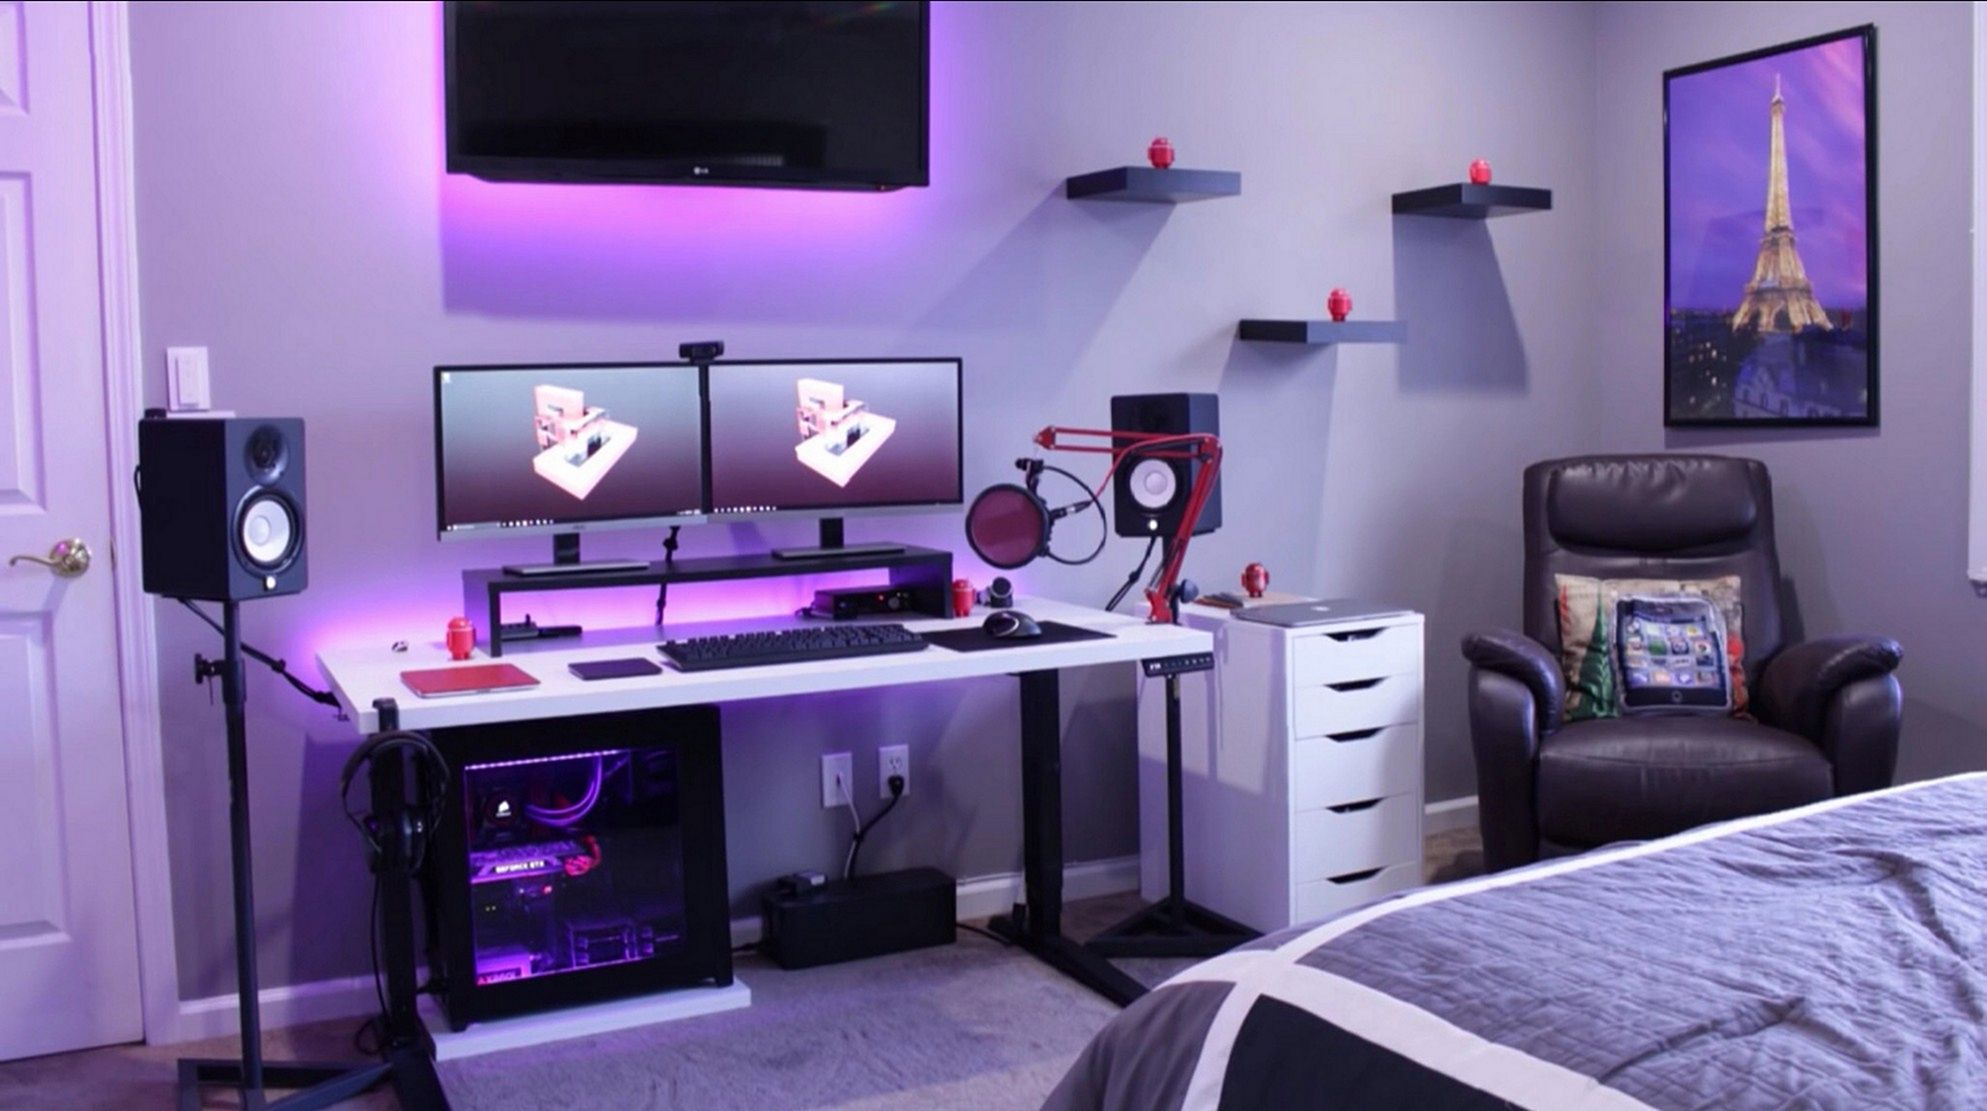 24 Amazing Gaming Room Design And Decor Ideas You Must Try With